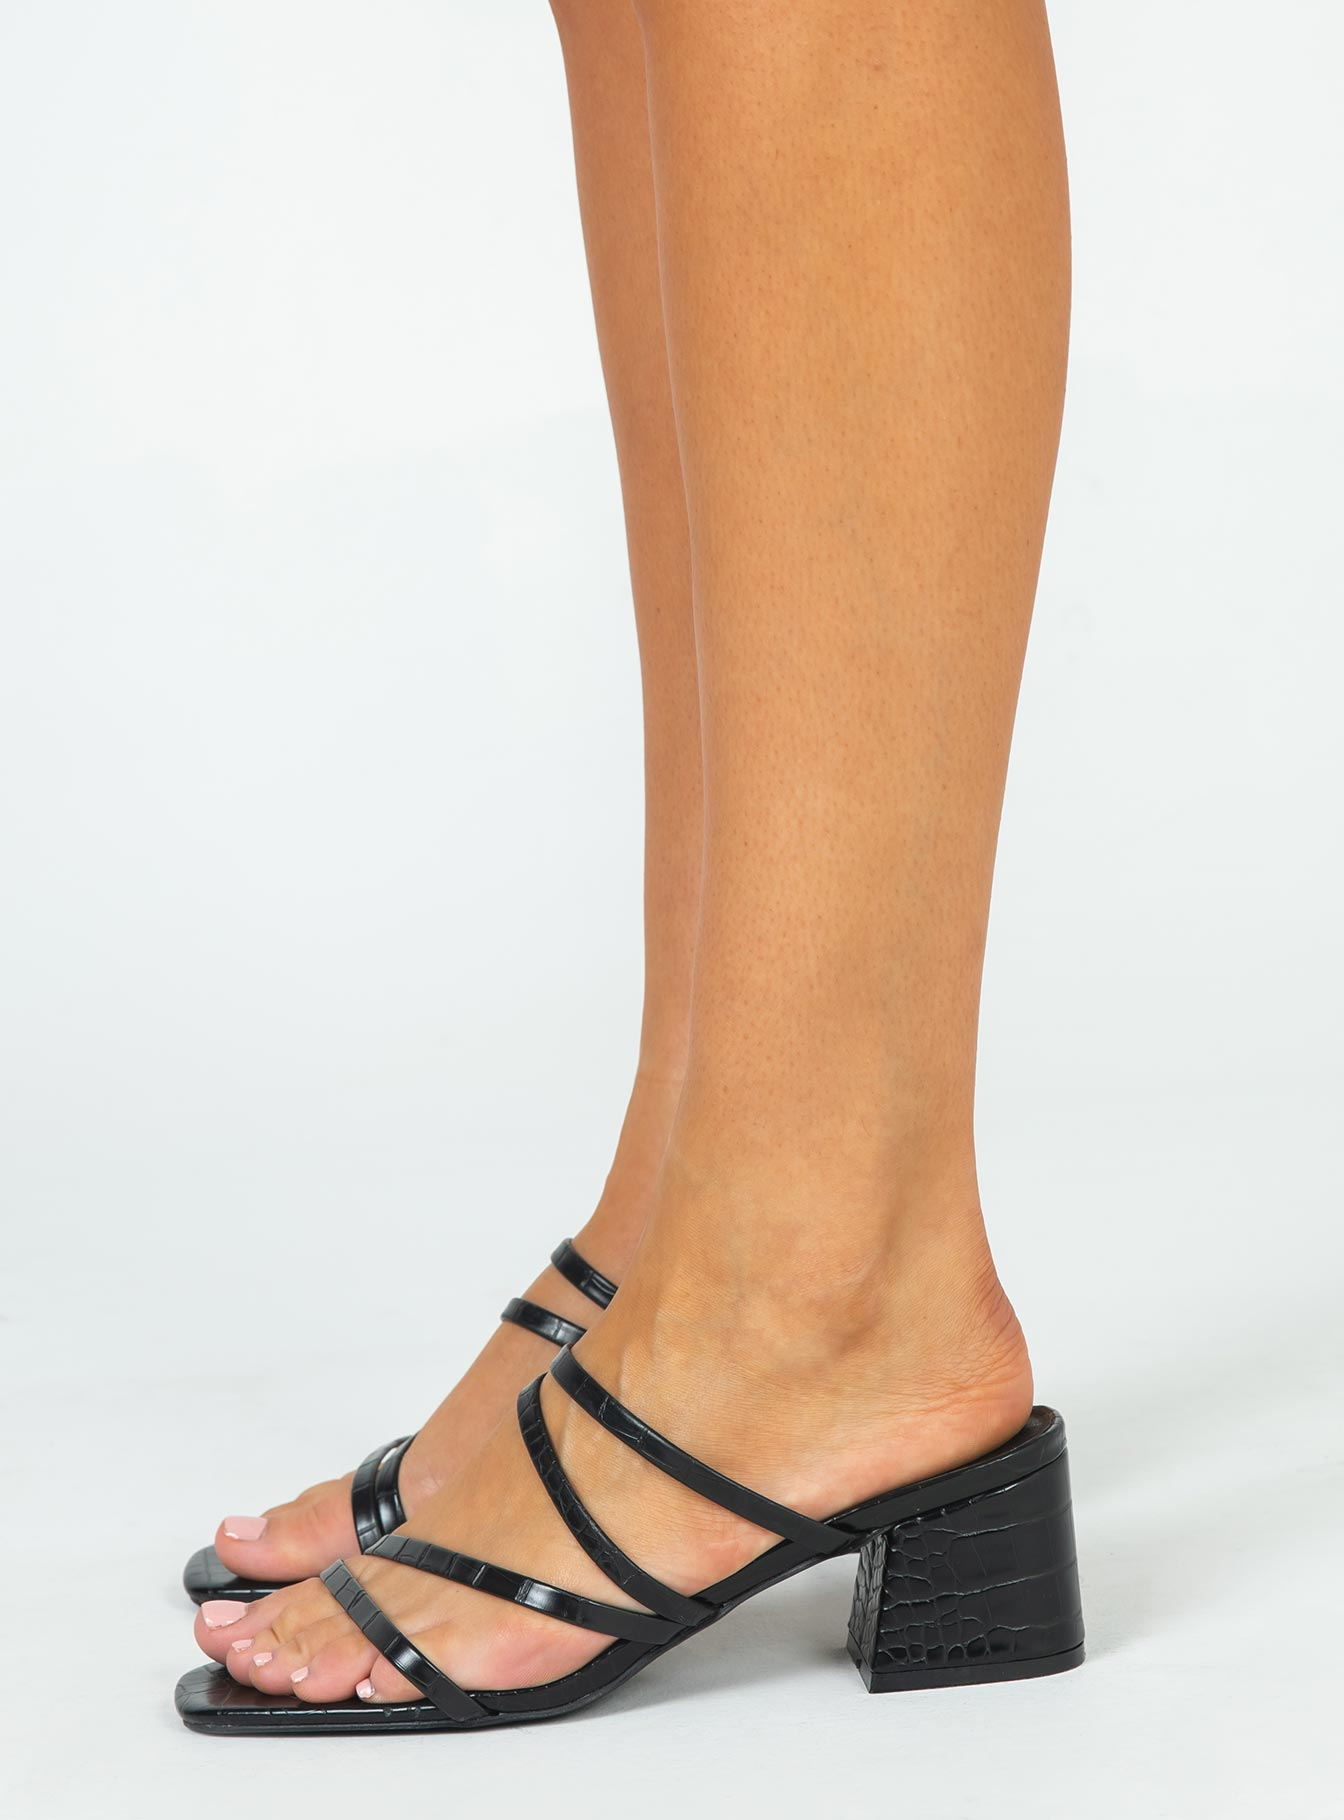 Therapy Bossy Heel Black Croc